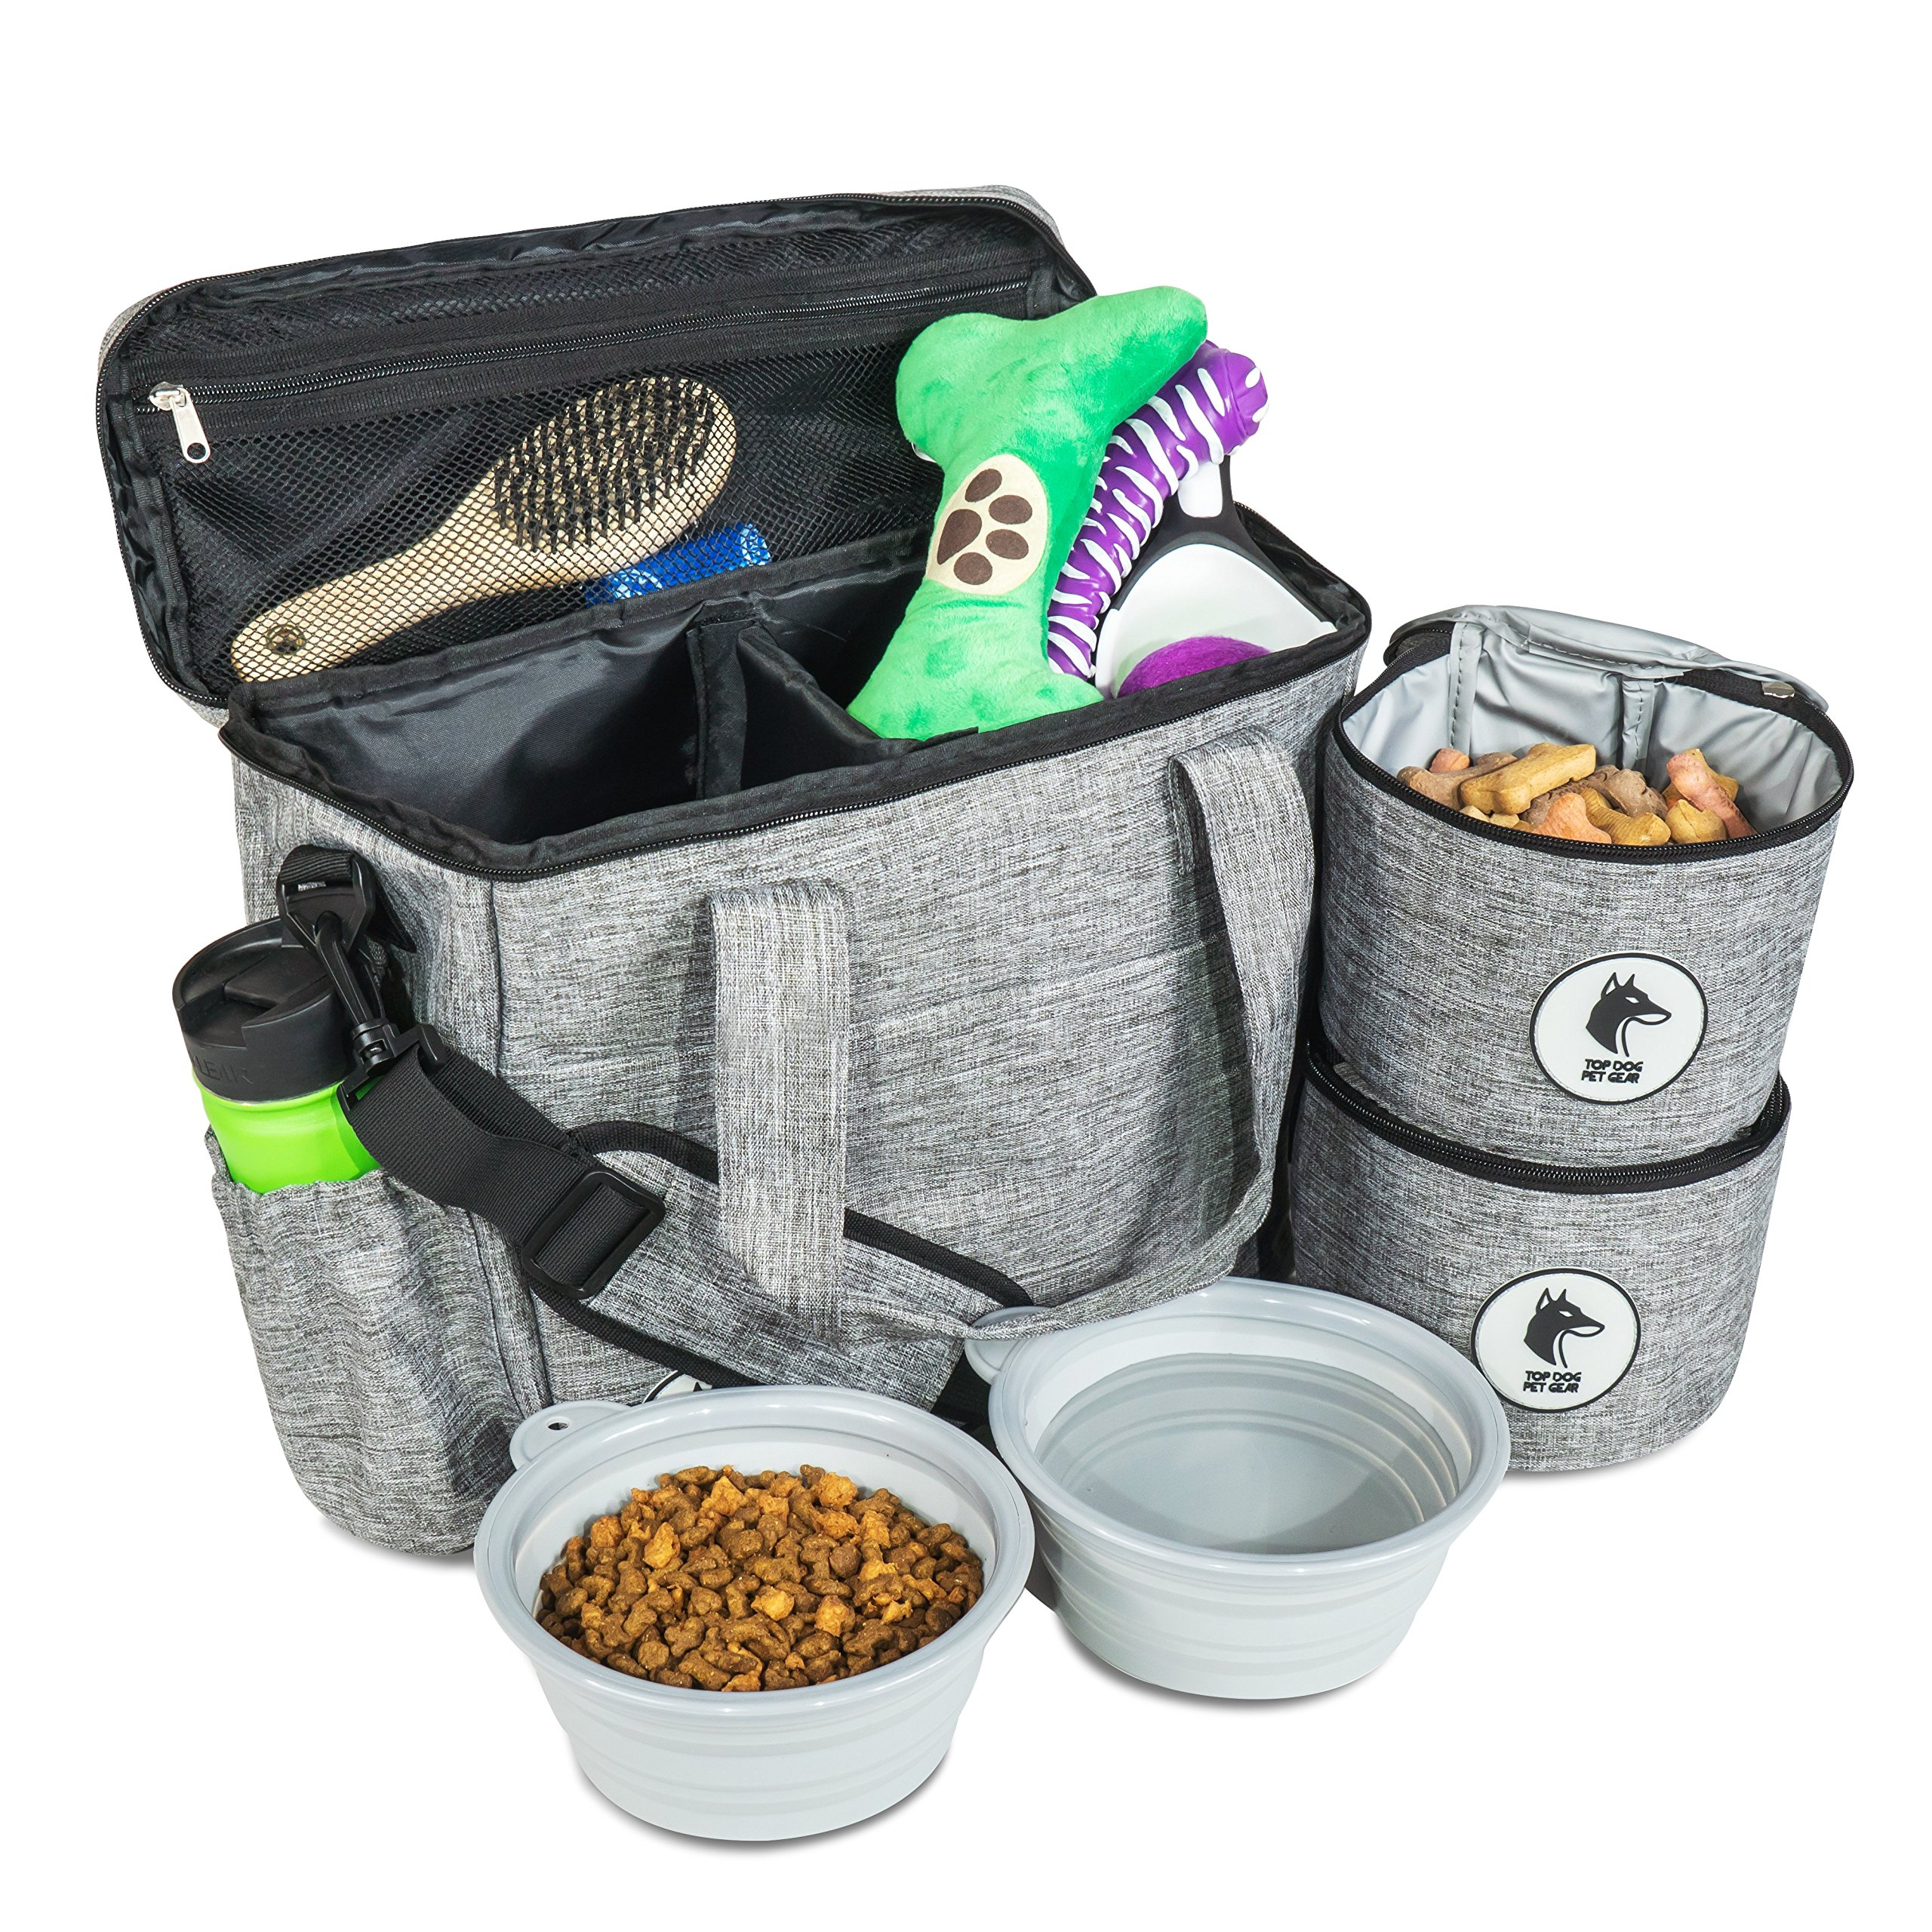 Top Dog Travel Bag - Airline Approved Travel Set for Dogs of All Sizes - Stores All Your Dog Accessories - Includes Travel Bag, 2x Food Storage Containers and 2x Collapsible Dog Bowls - Gray by Top Dog Pet Gear